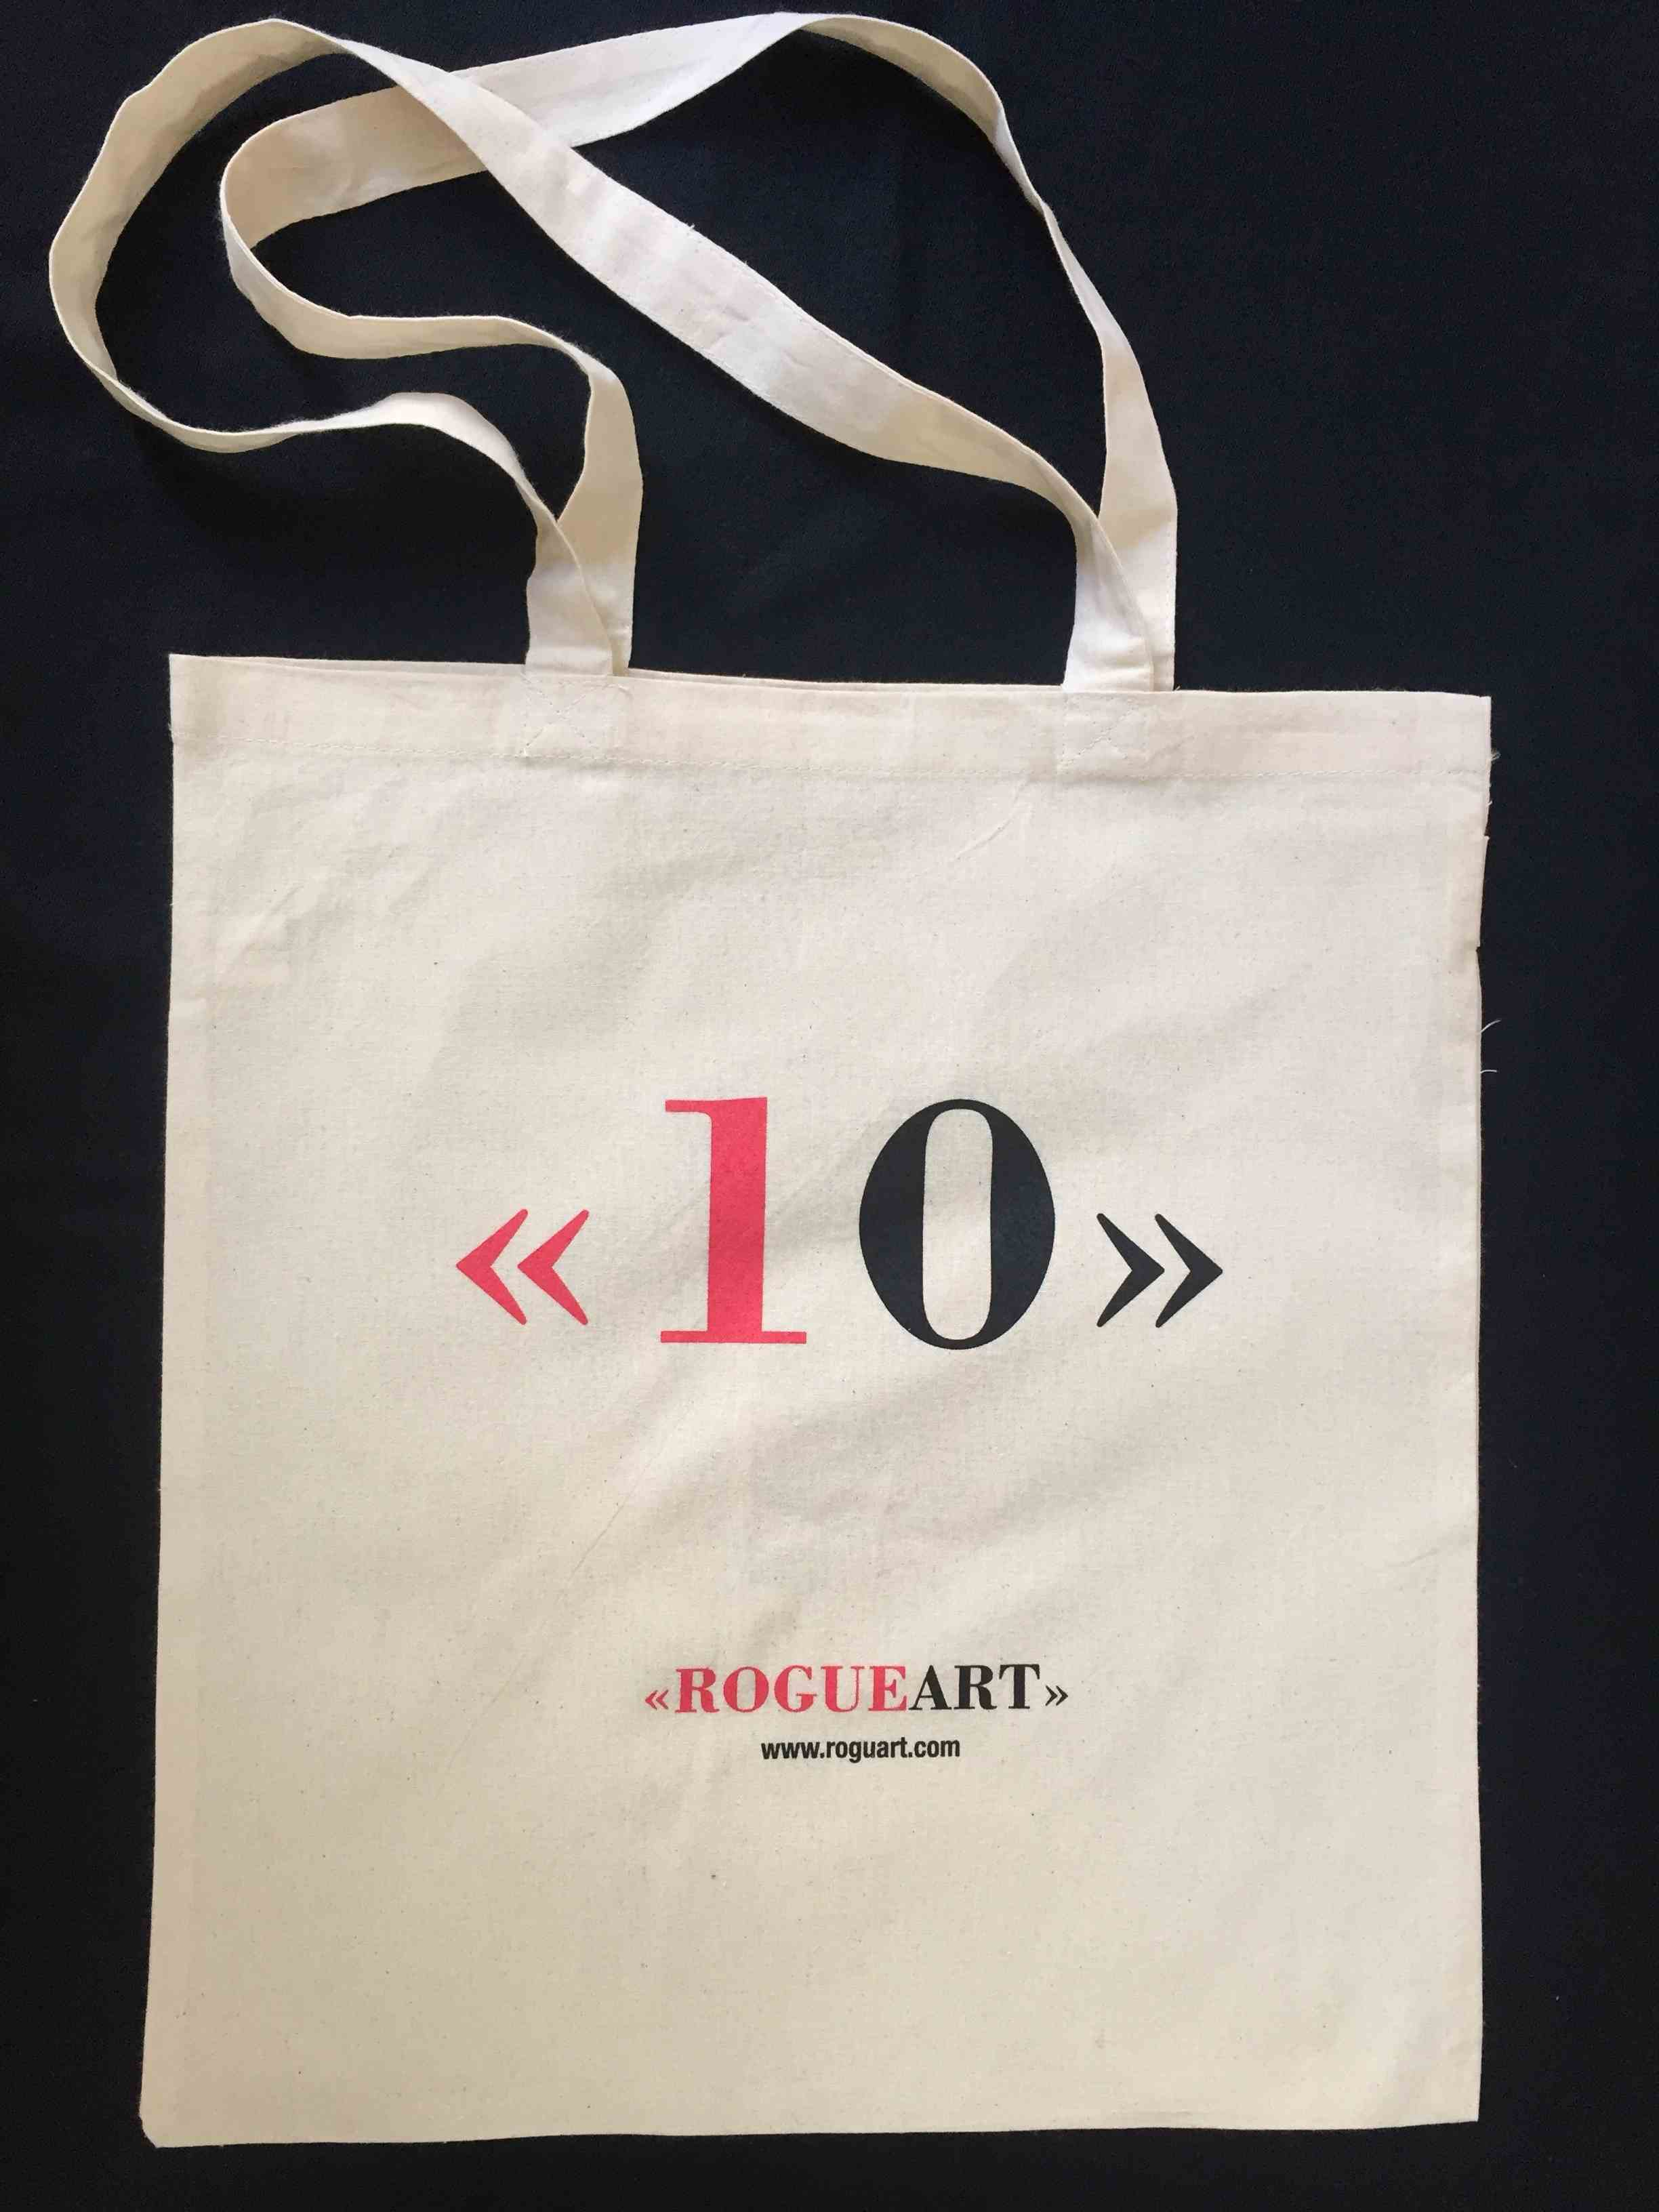 Side A Bag RogueArt 10th anniversary Bags RogueArt 10th anniversary